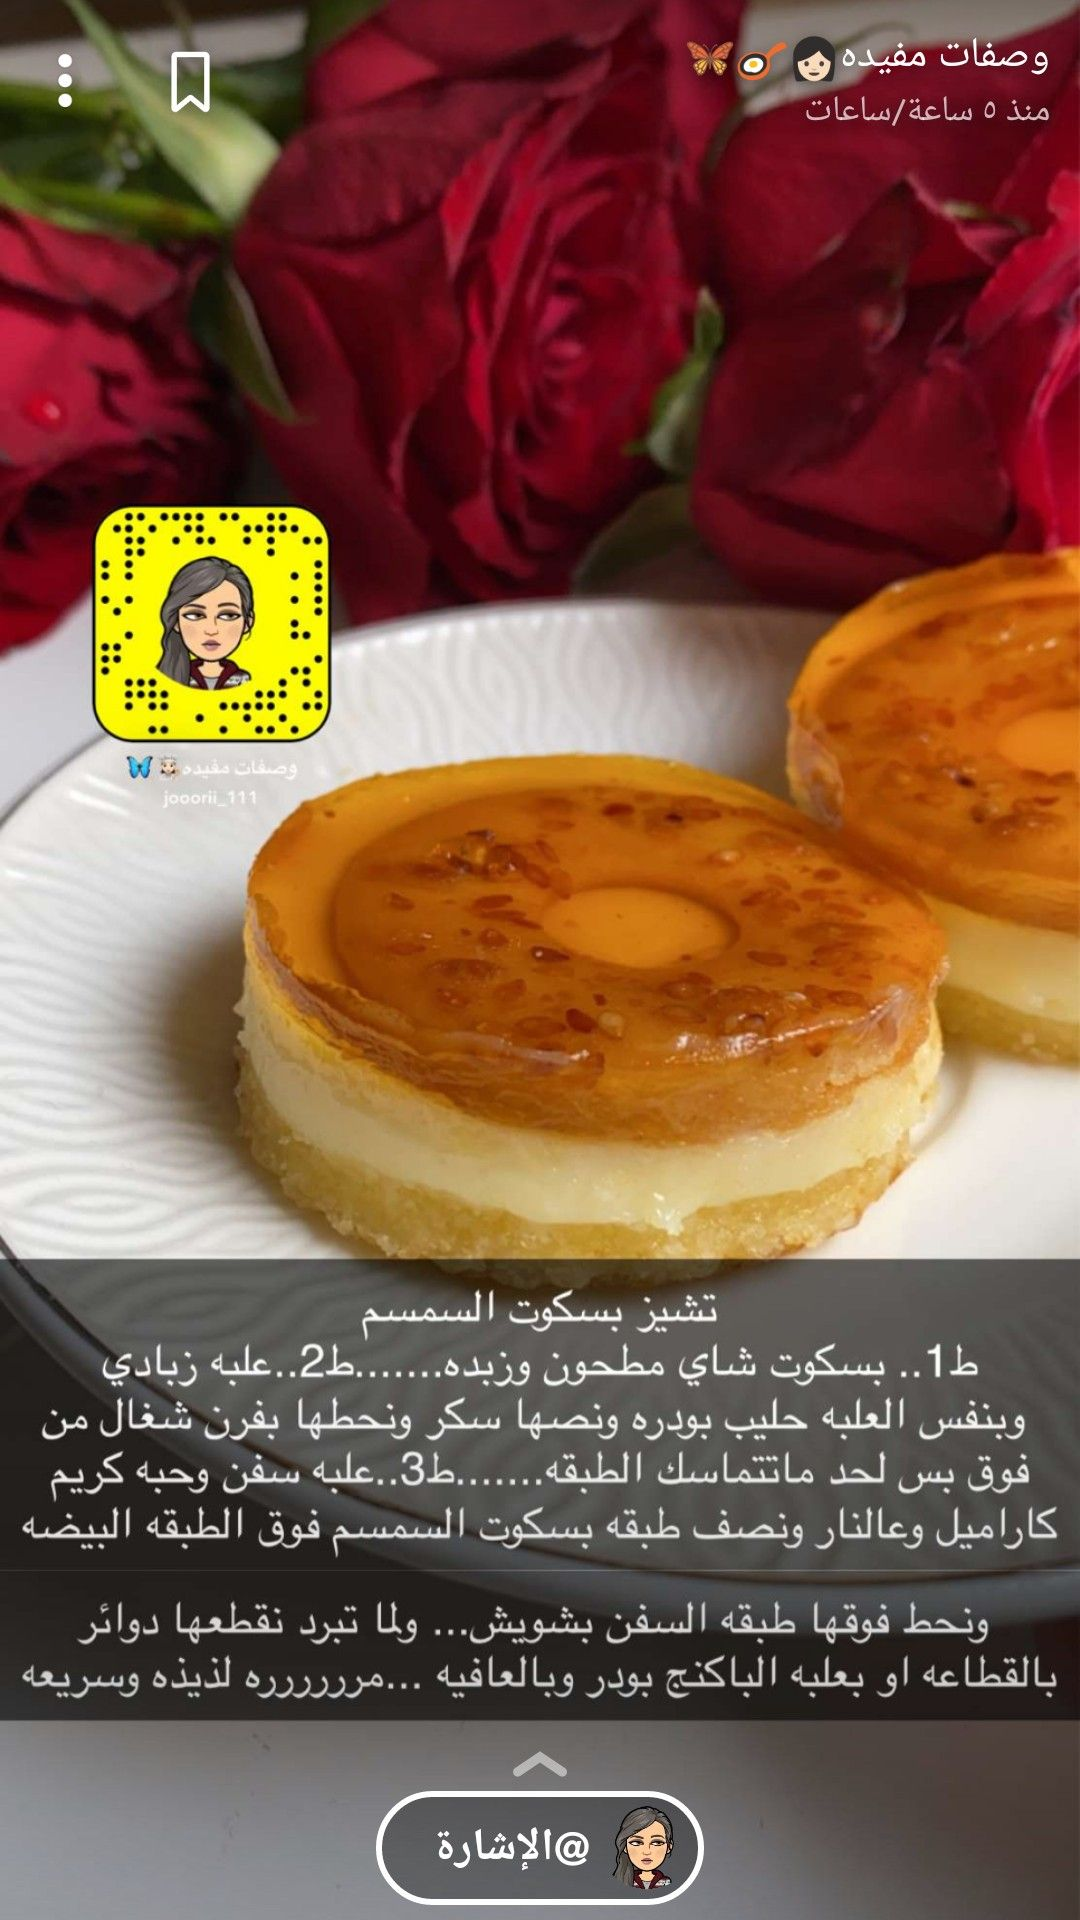 Pin By Zaaha 23 On لذاذه Yummy Food Dessert Food Recipies Desserts